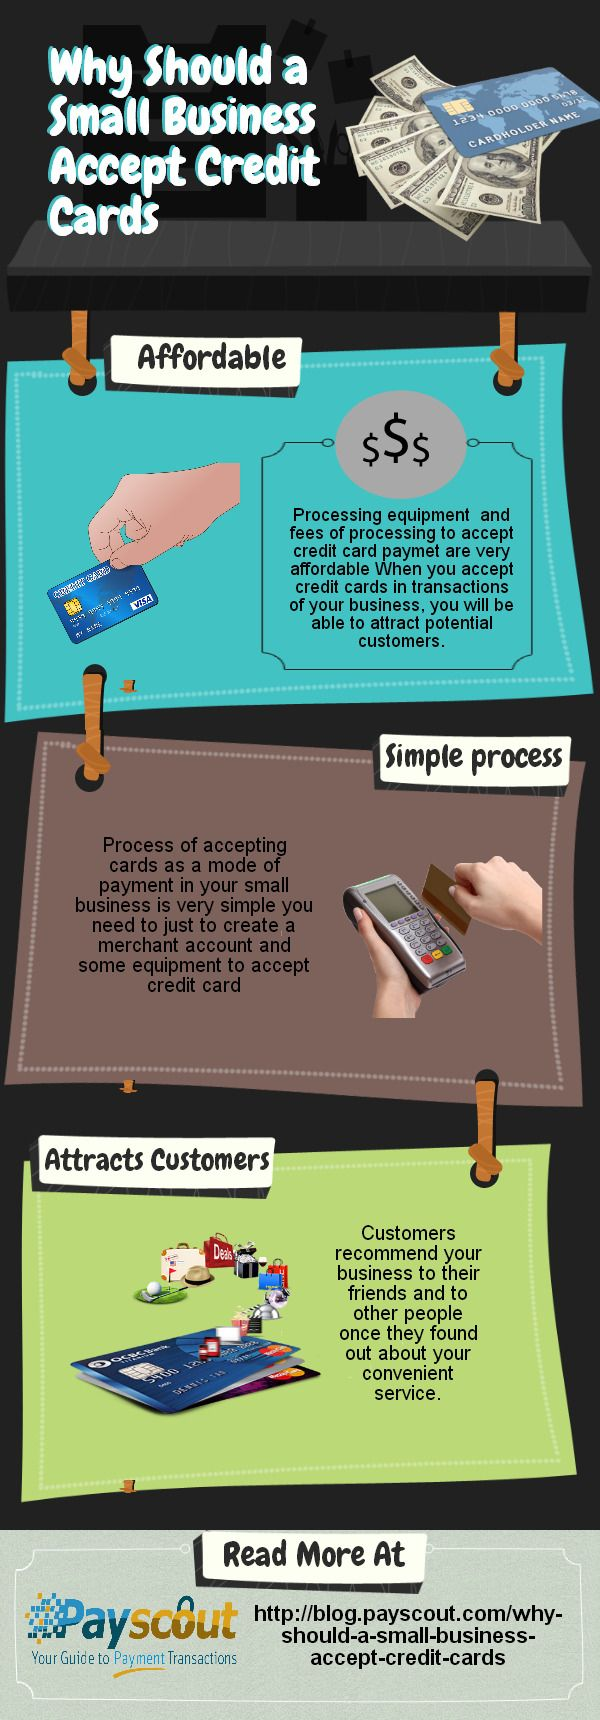 45 best Credit Card Processing images on Pinterest | Credit cards ...